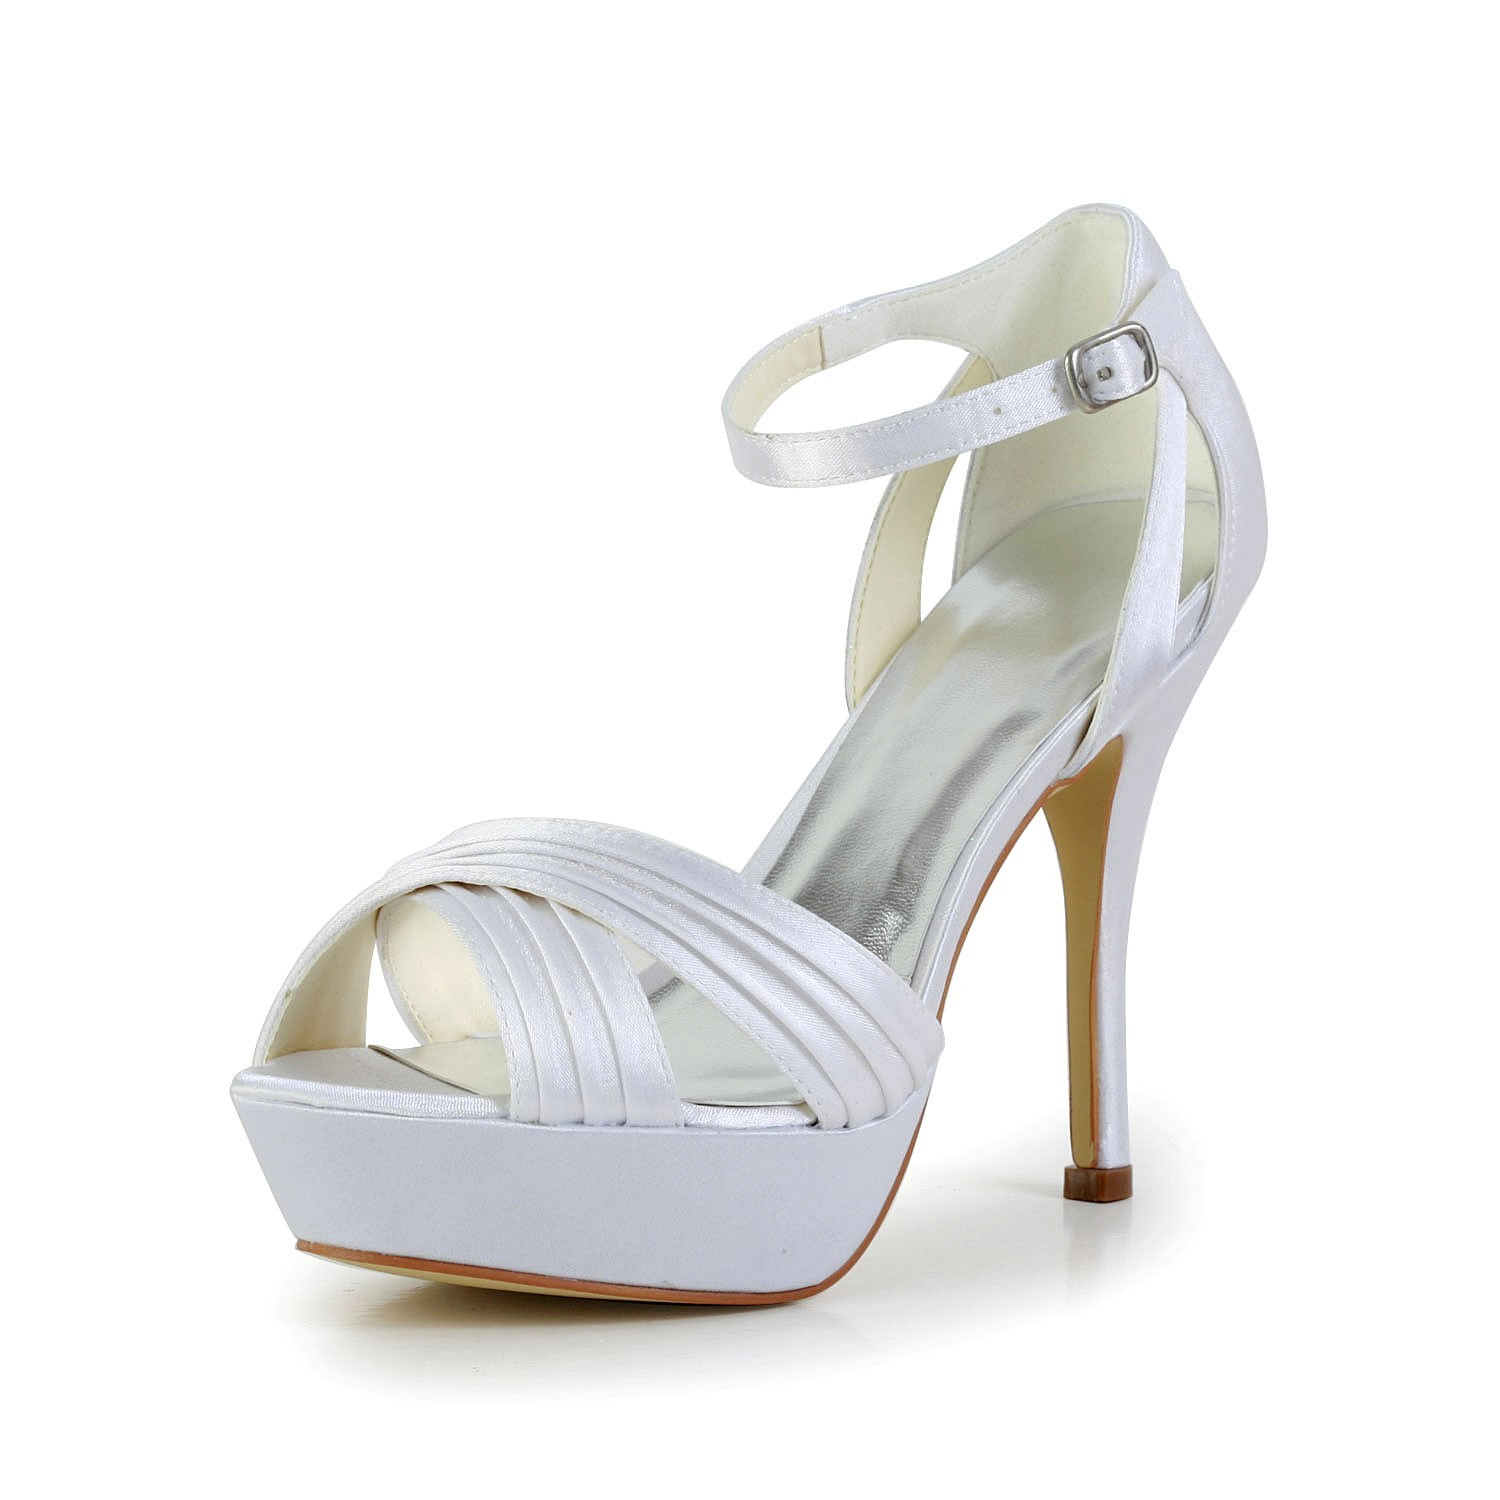 7084a8f53ed9 The Most Stylish Women s Satin Stiletto Heel Peep Toe Platform Sandals  White Wedding Shoes With Buckle